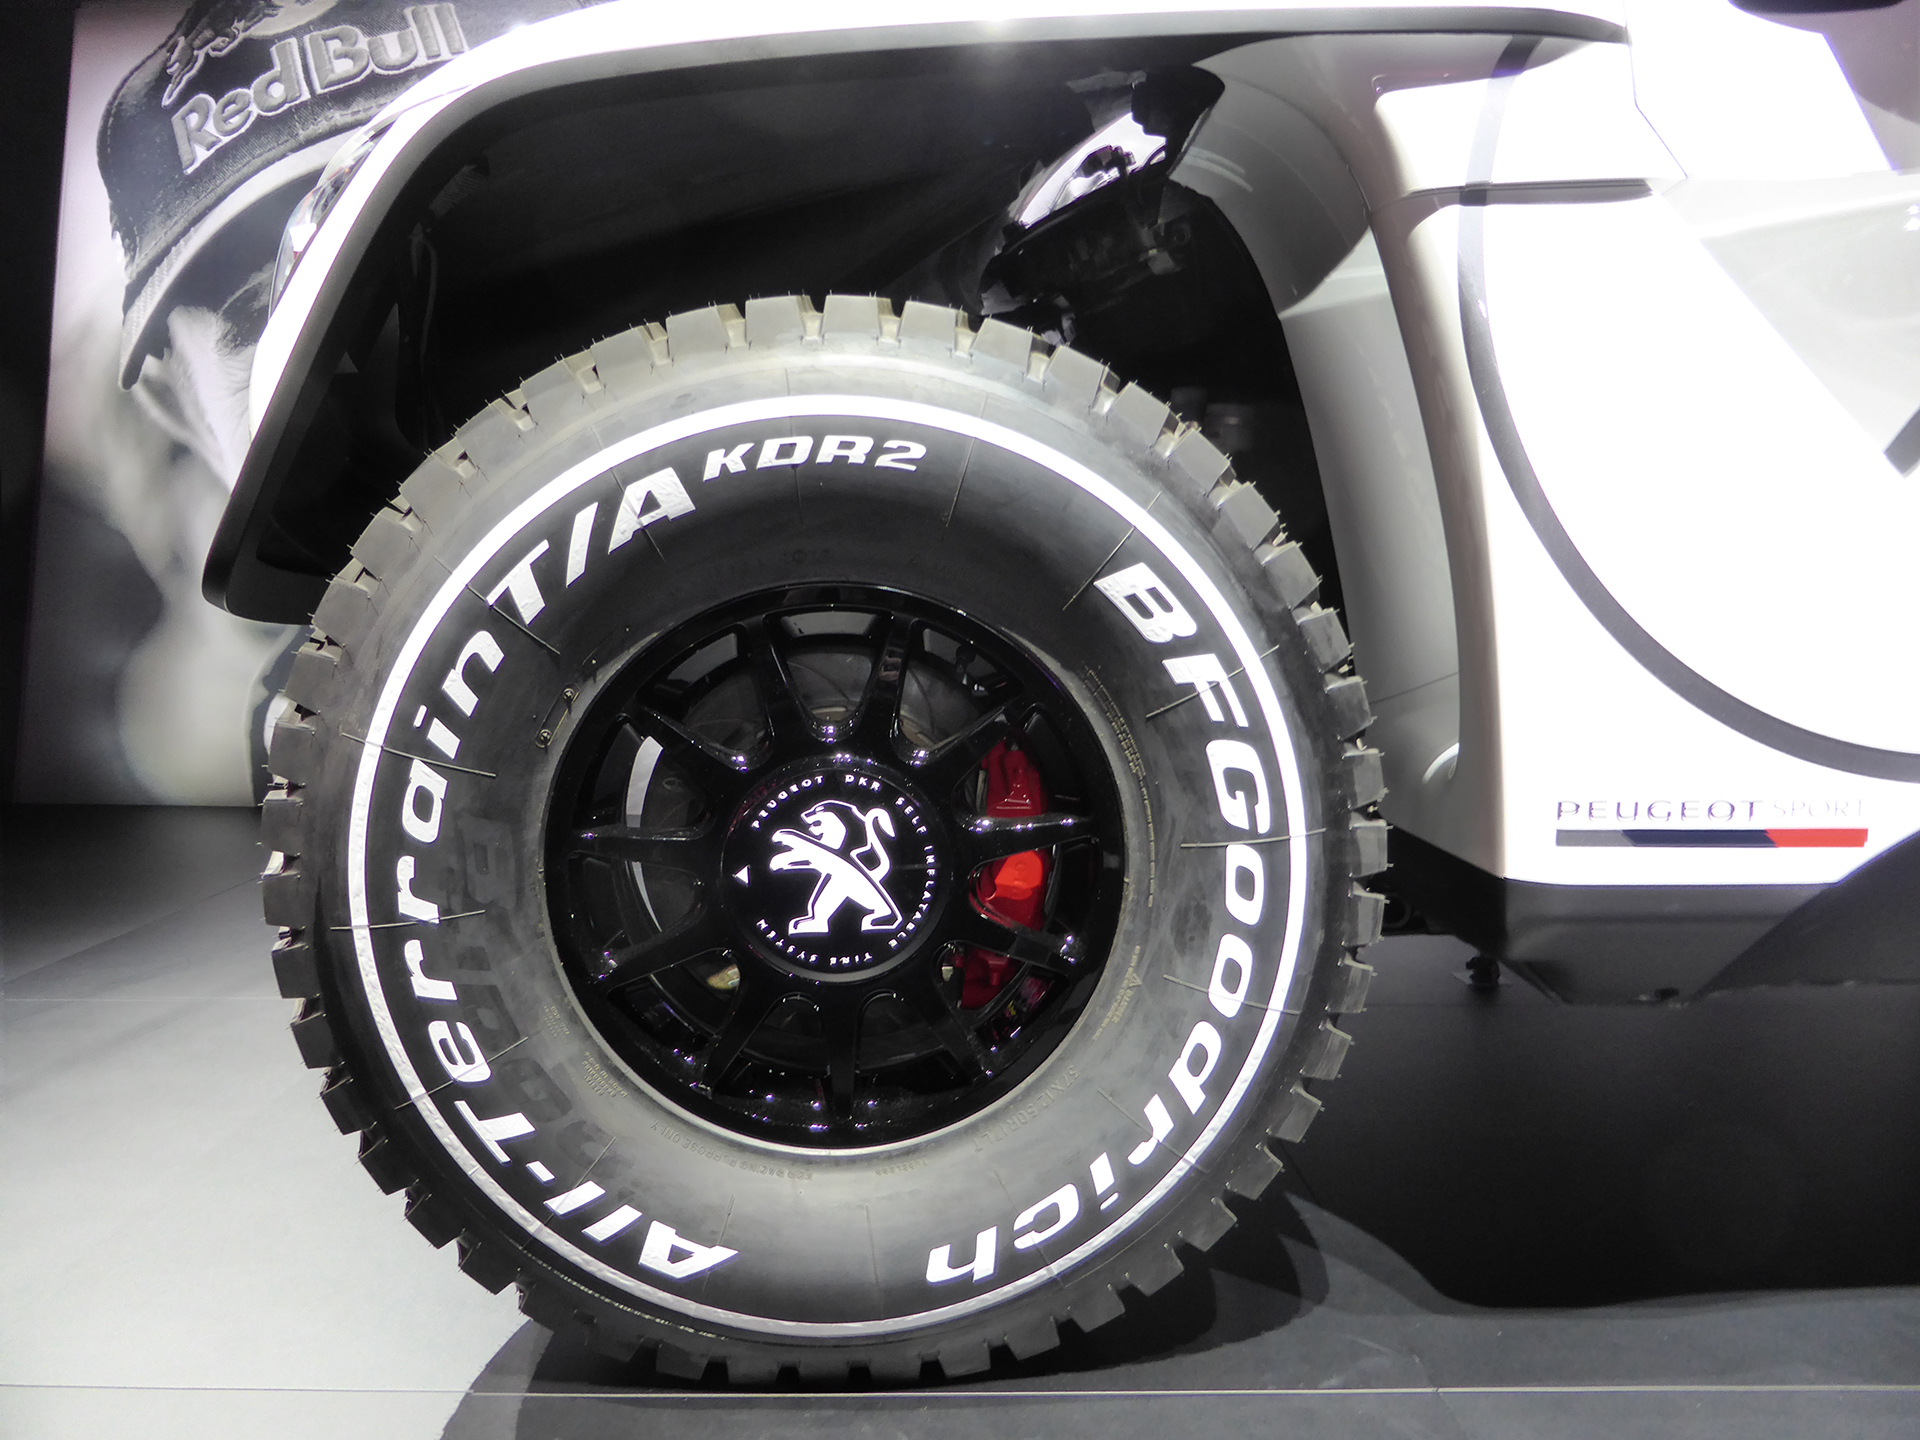 Peugeot 3008 DKR – roue / wheel – 2016 – Mondial Auto – photo ELJ DM